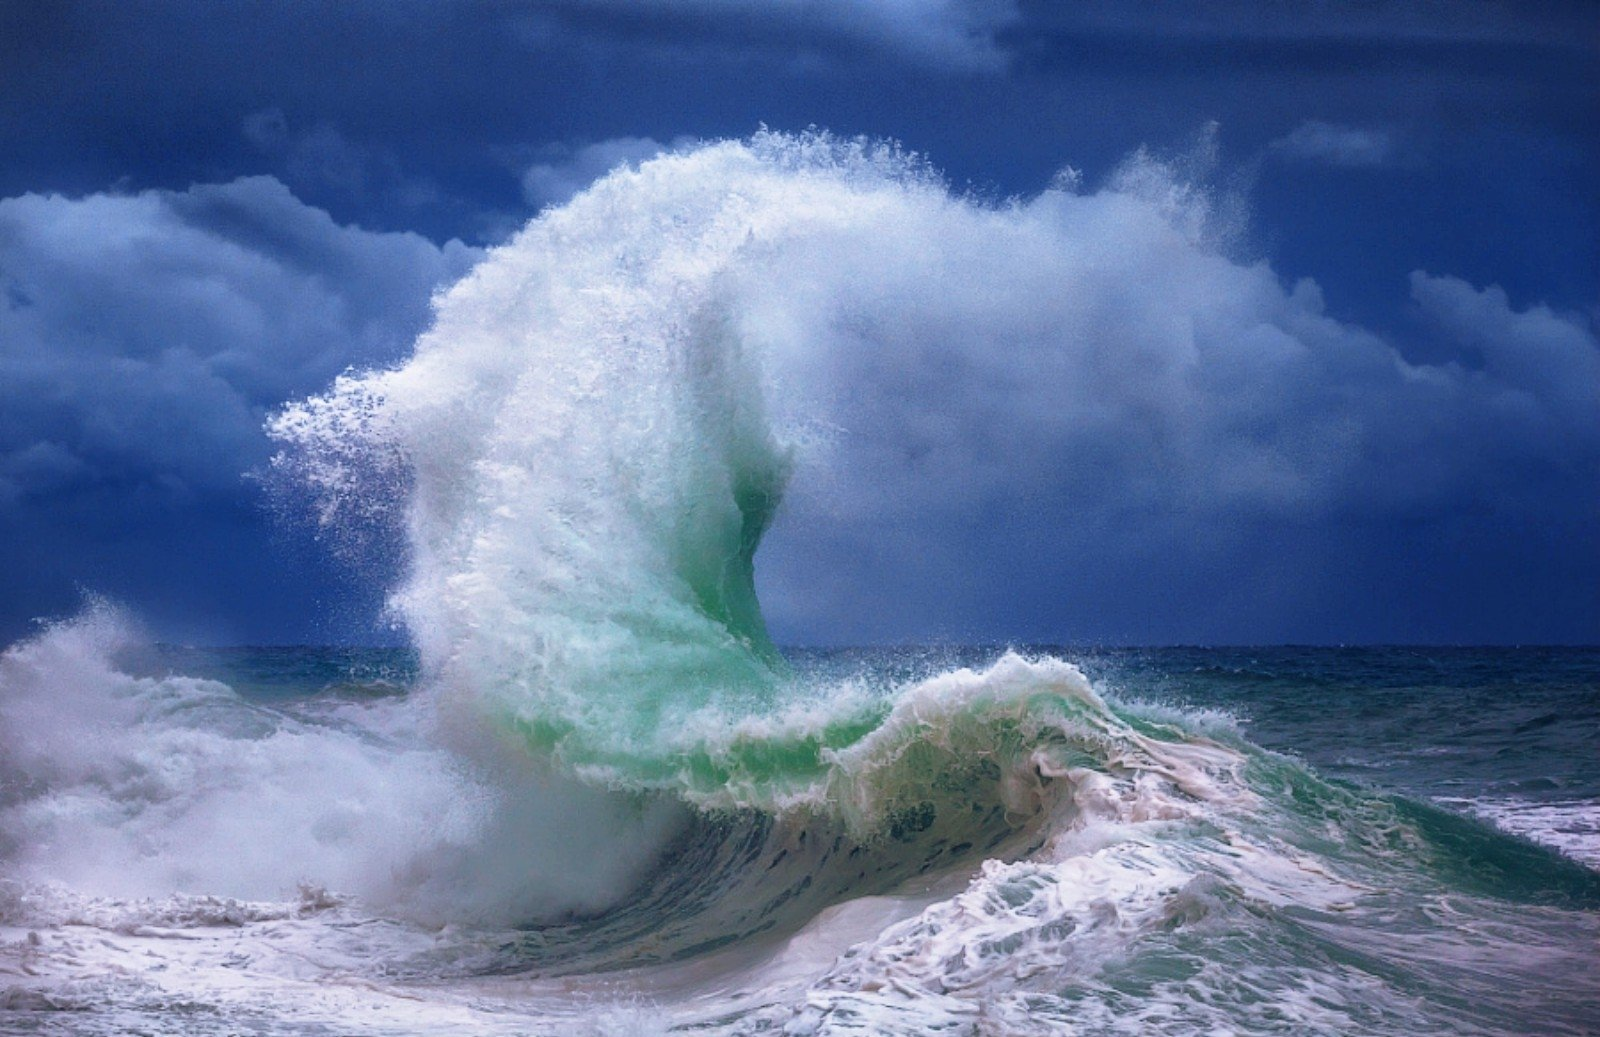 Ocean Wave Wallpaper and Background Image | 1600x1037 | ID:714467 - Wallpaper Abyss